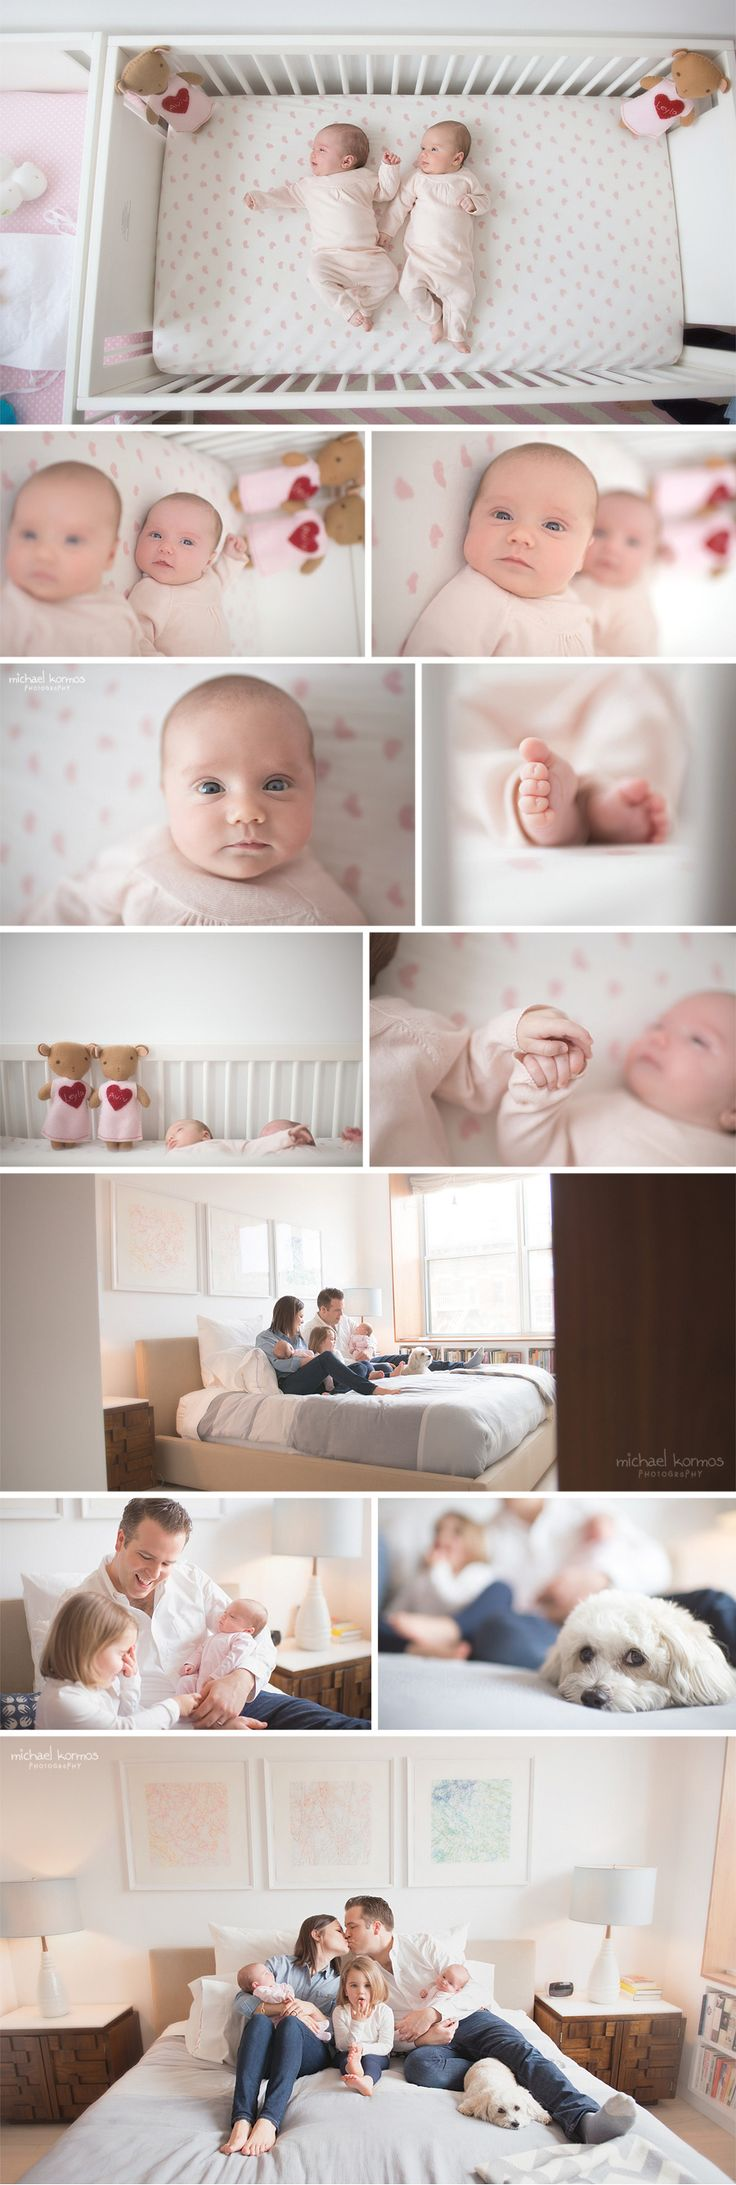 full house (baby photography, baby photographer nyc and san diego)